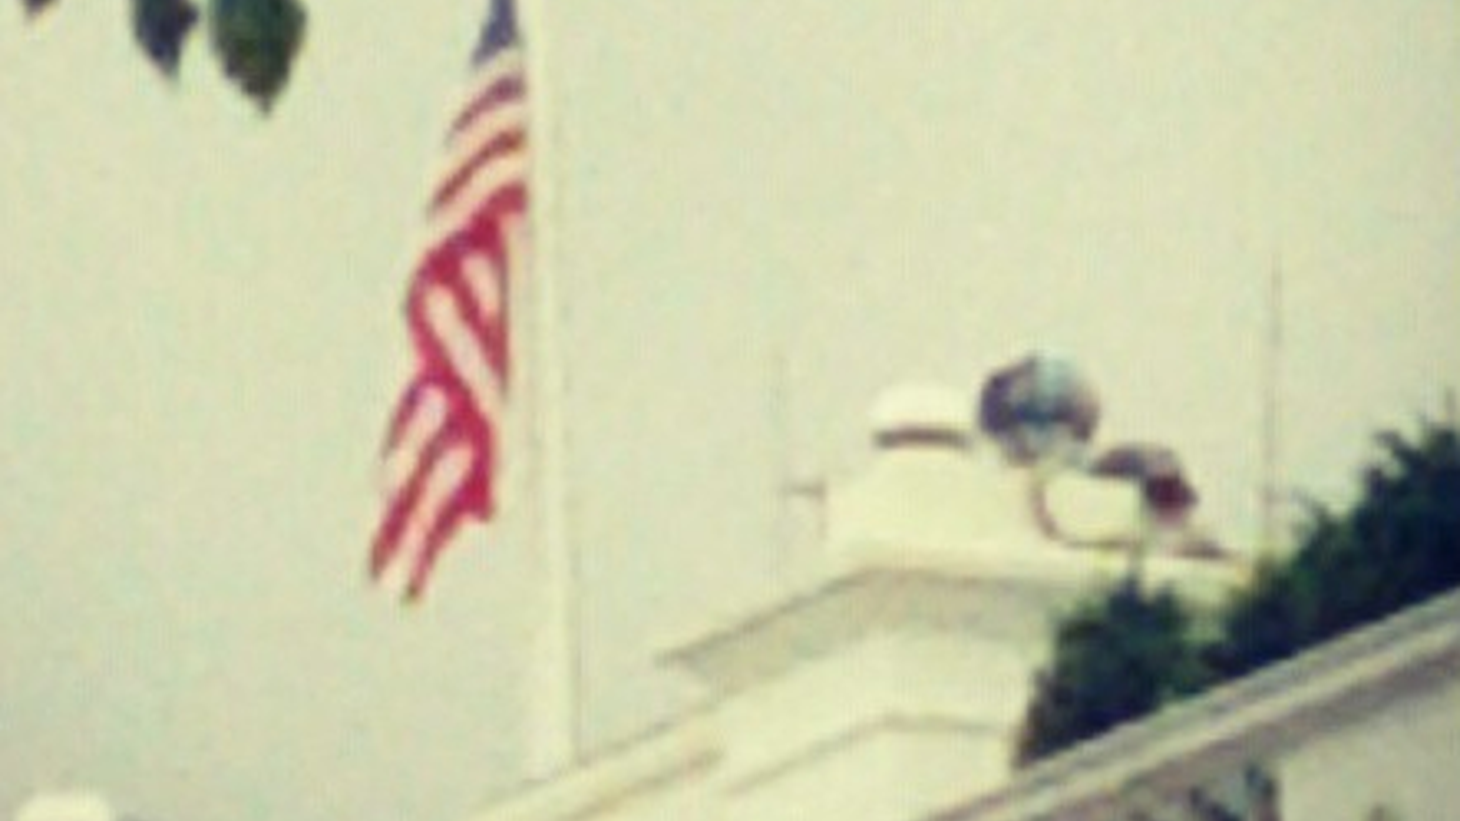 @JaredRizzi tweeted this photo of the flag atop the White House at half mast